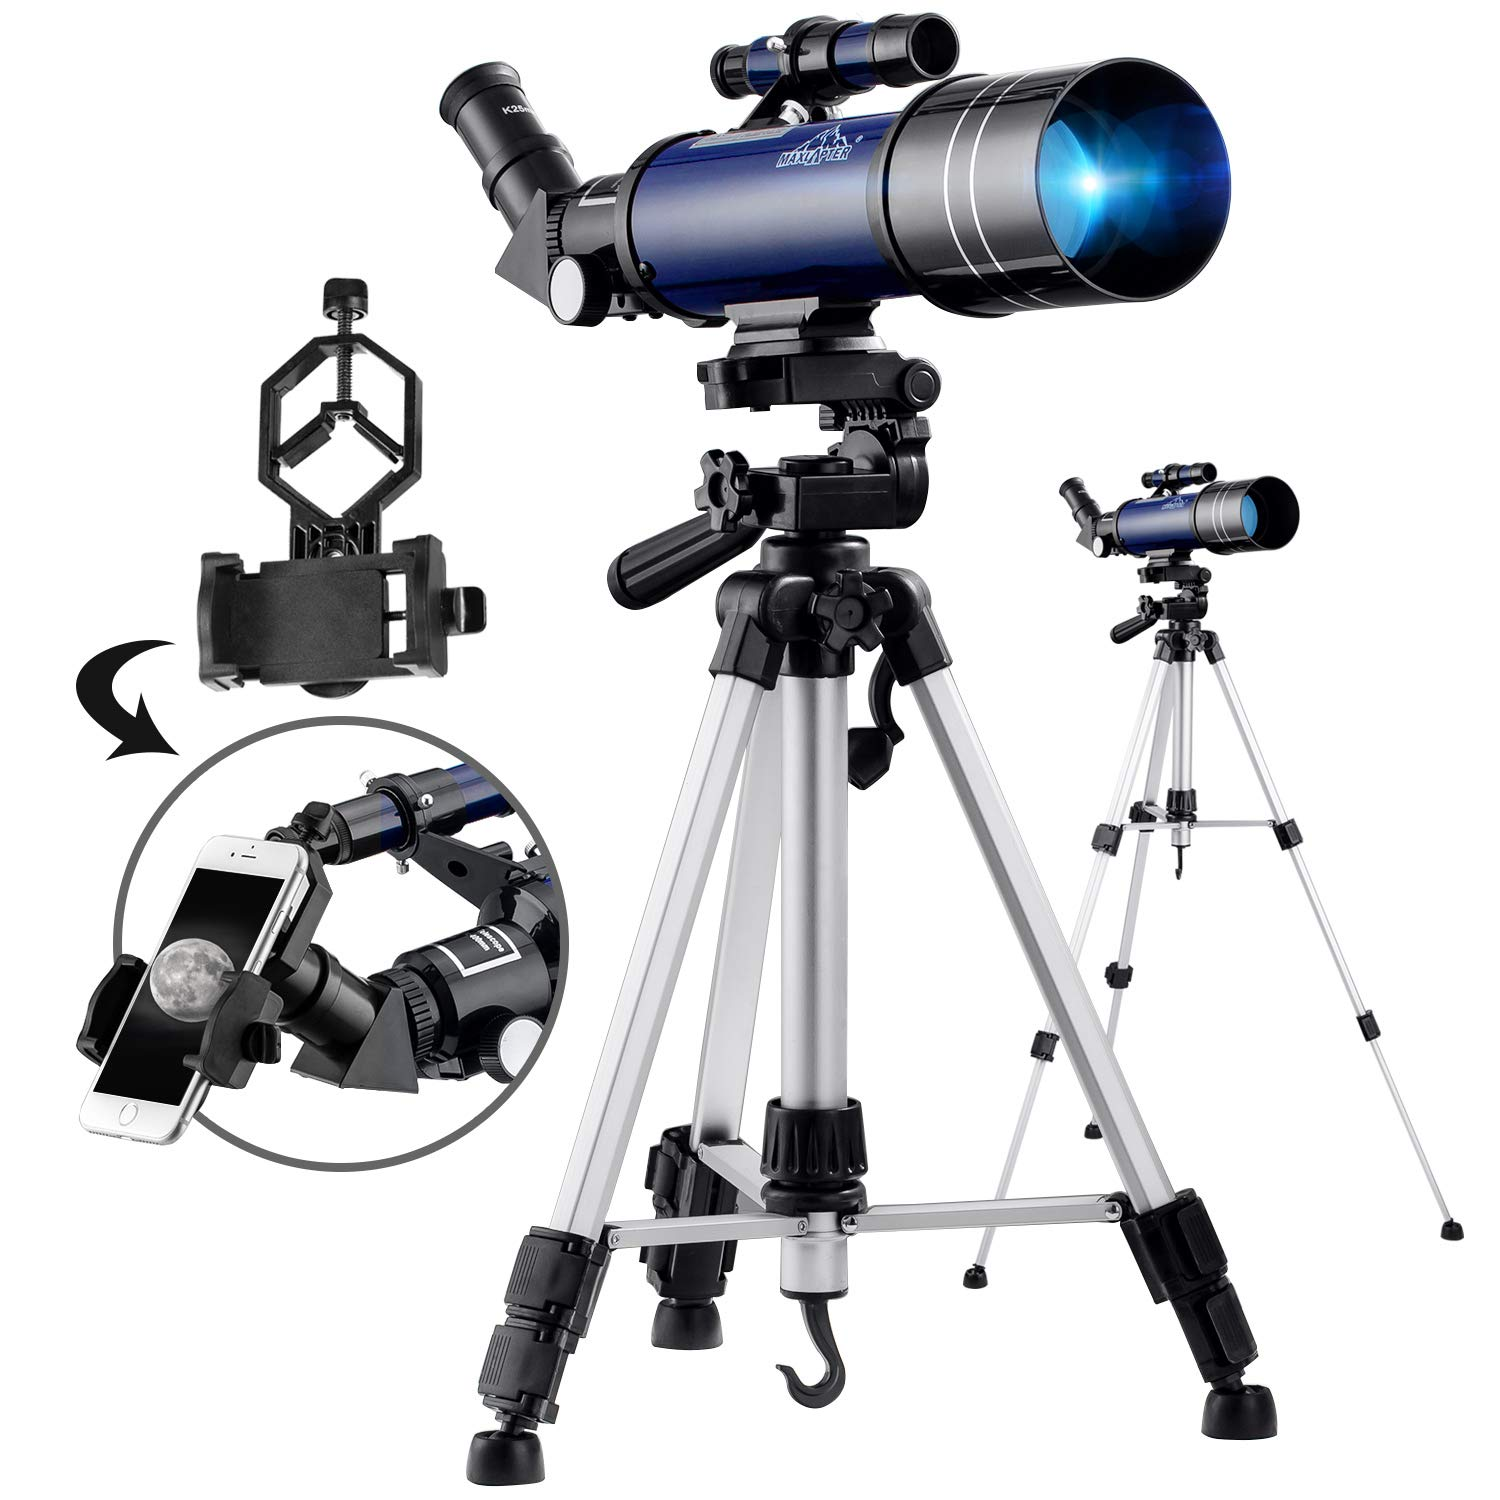 MAXLAPTER Telescope for Kids Beginners, Fully Coated Glass Optics 70mm Astronomical Refractor Travel Scope with Adjustable Tripod, Finder Scope and Smartphone Adapter by MAXLAPTER